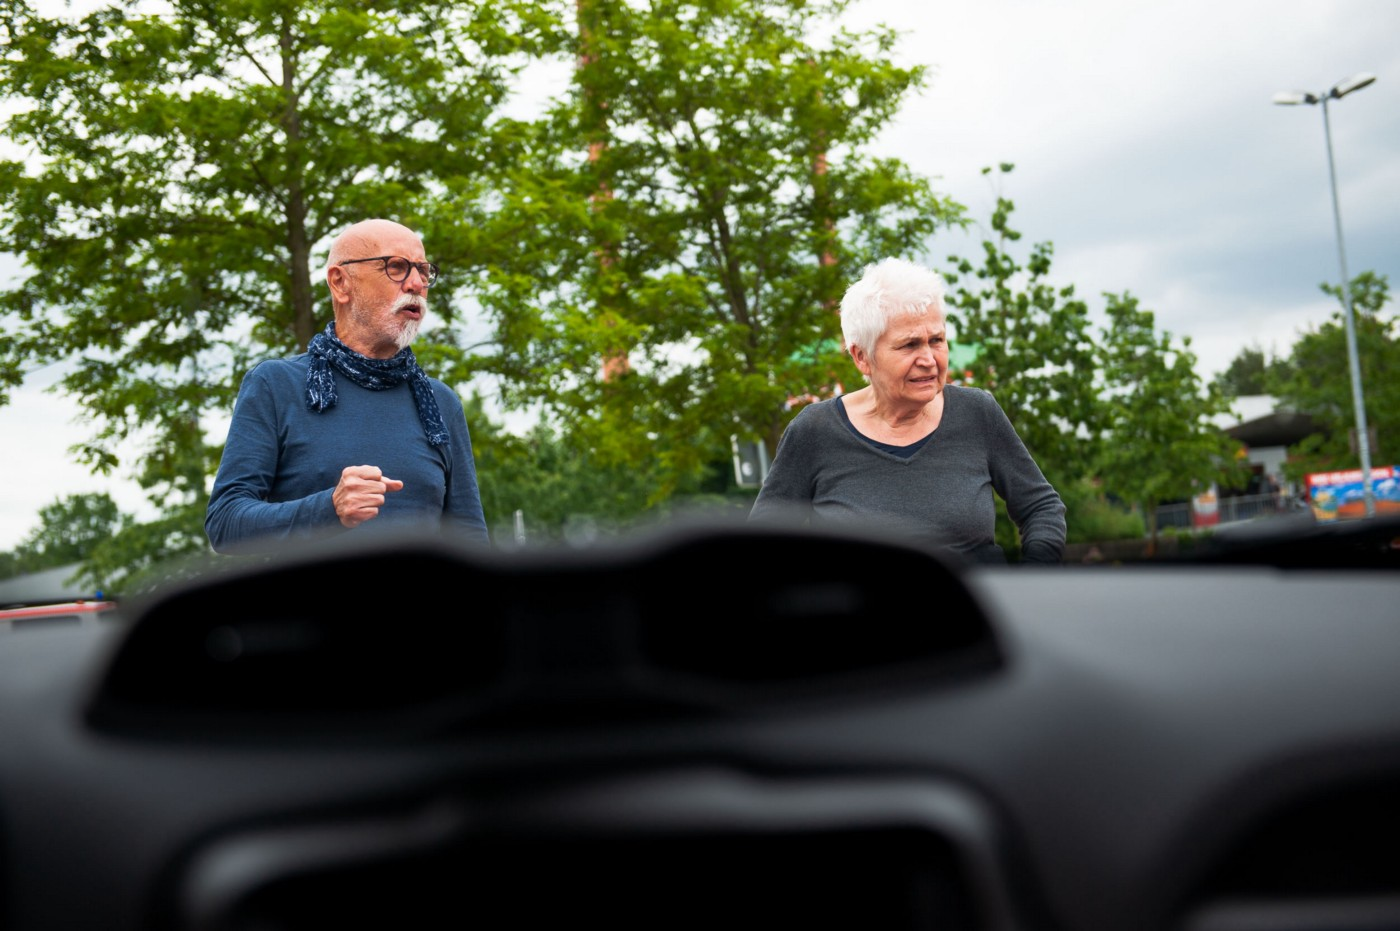 Mom and dad react to a passing car at an autobahn rest stop on the road from Sylt to Oberhausen. Germany, May 28, 2019.